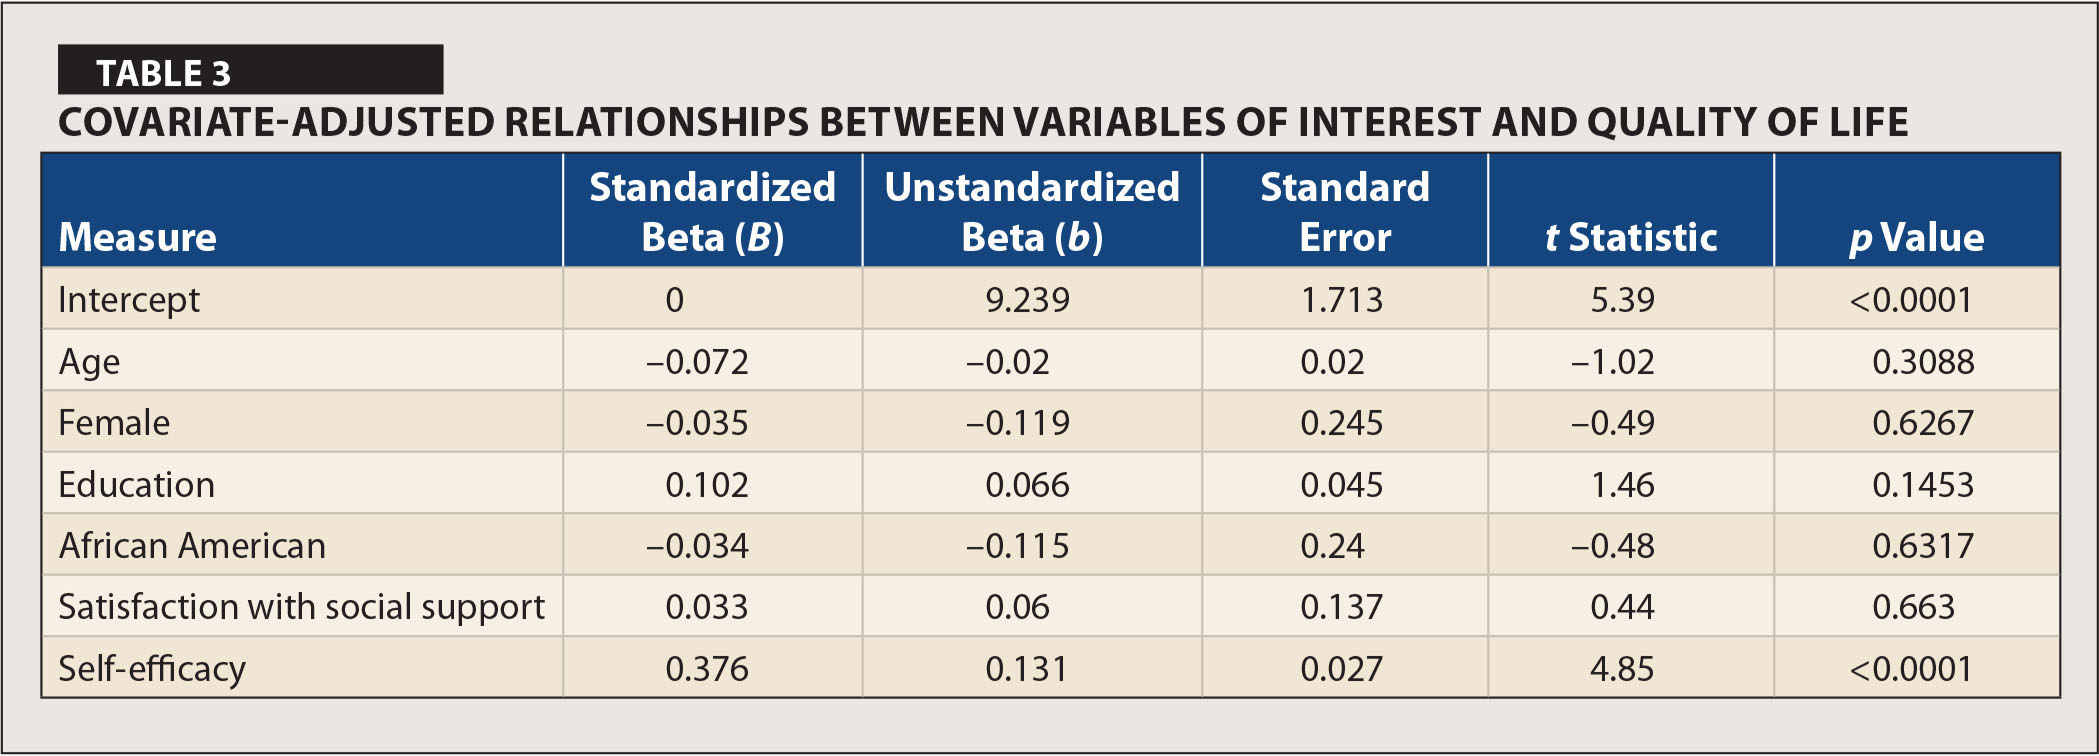 Covariate-Adjusted Relationships Between Variables of Interest and Quality of Life